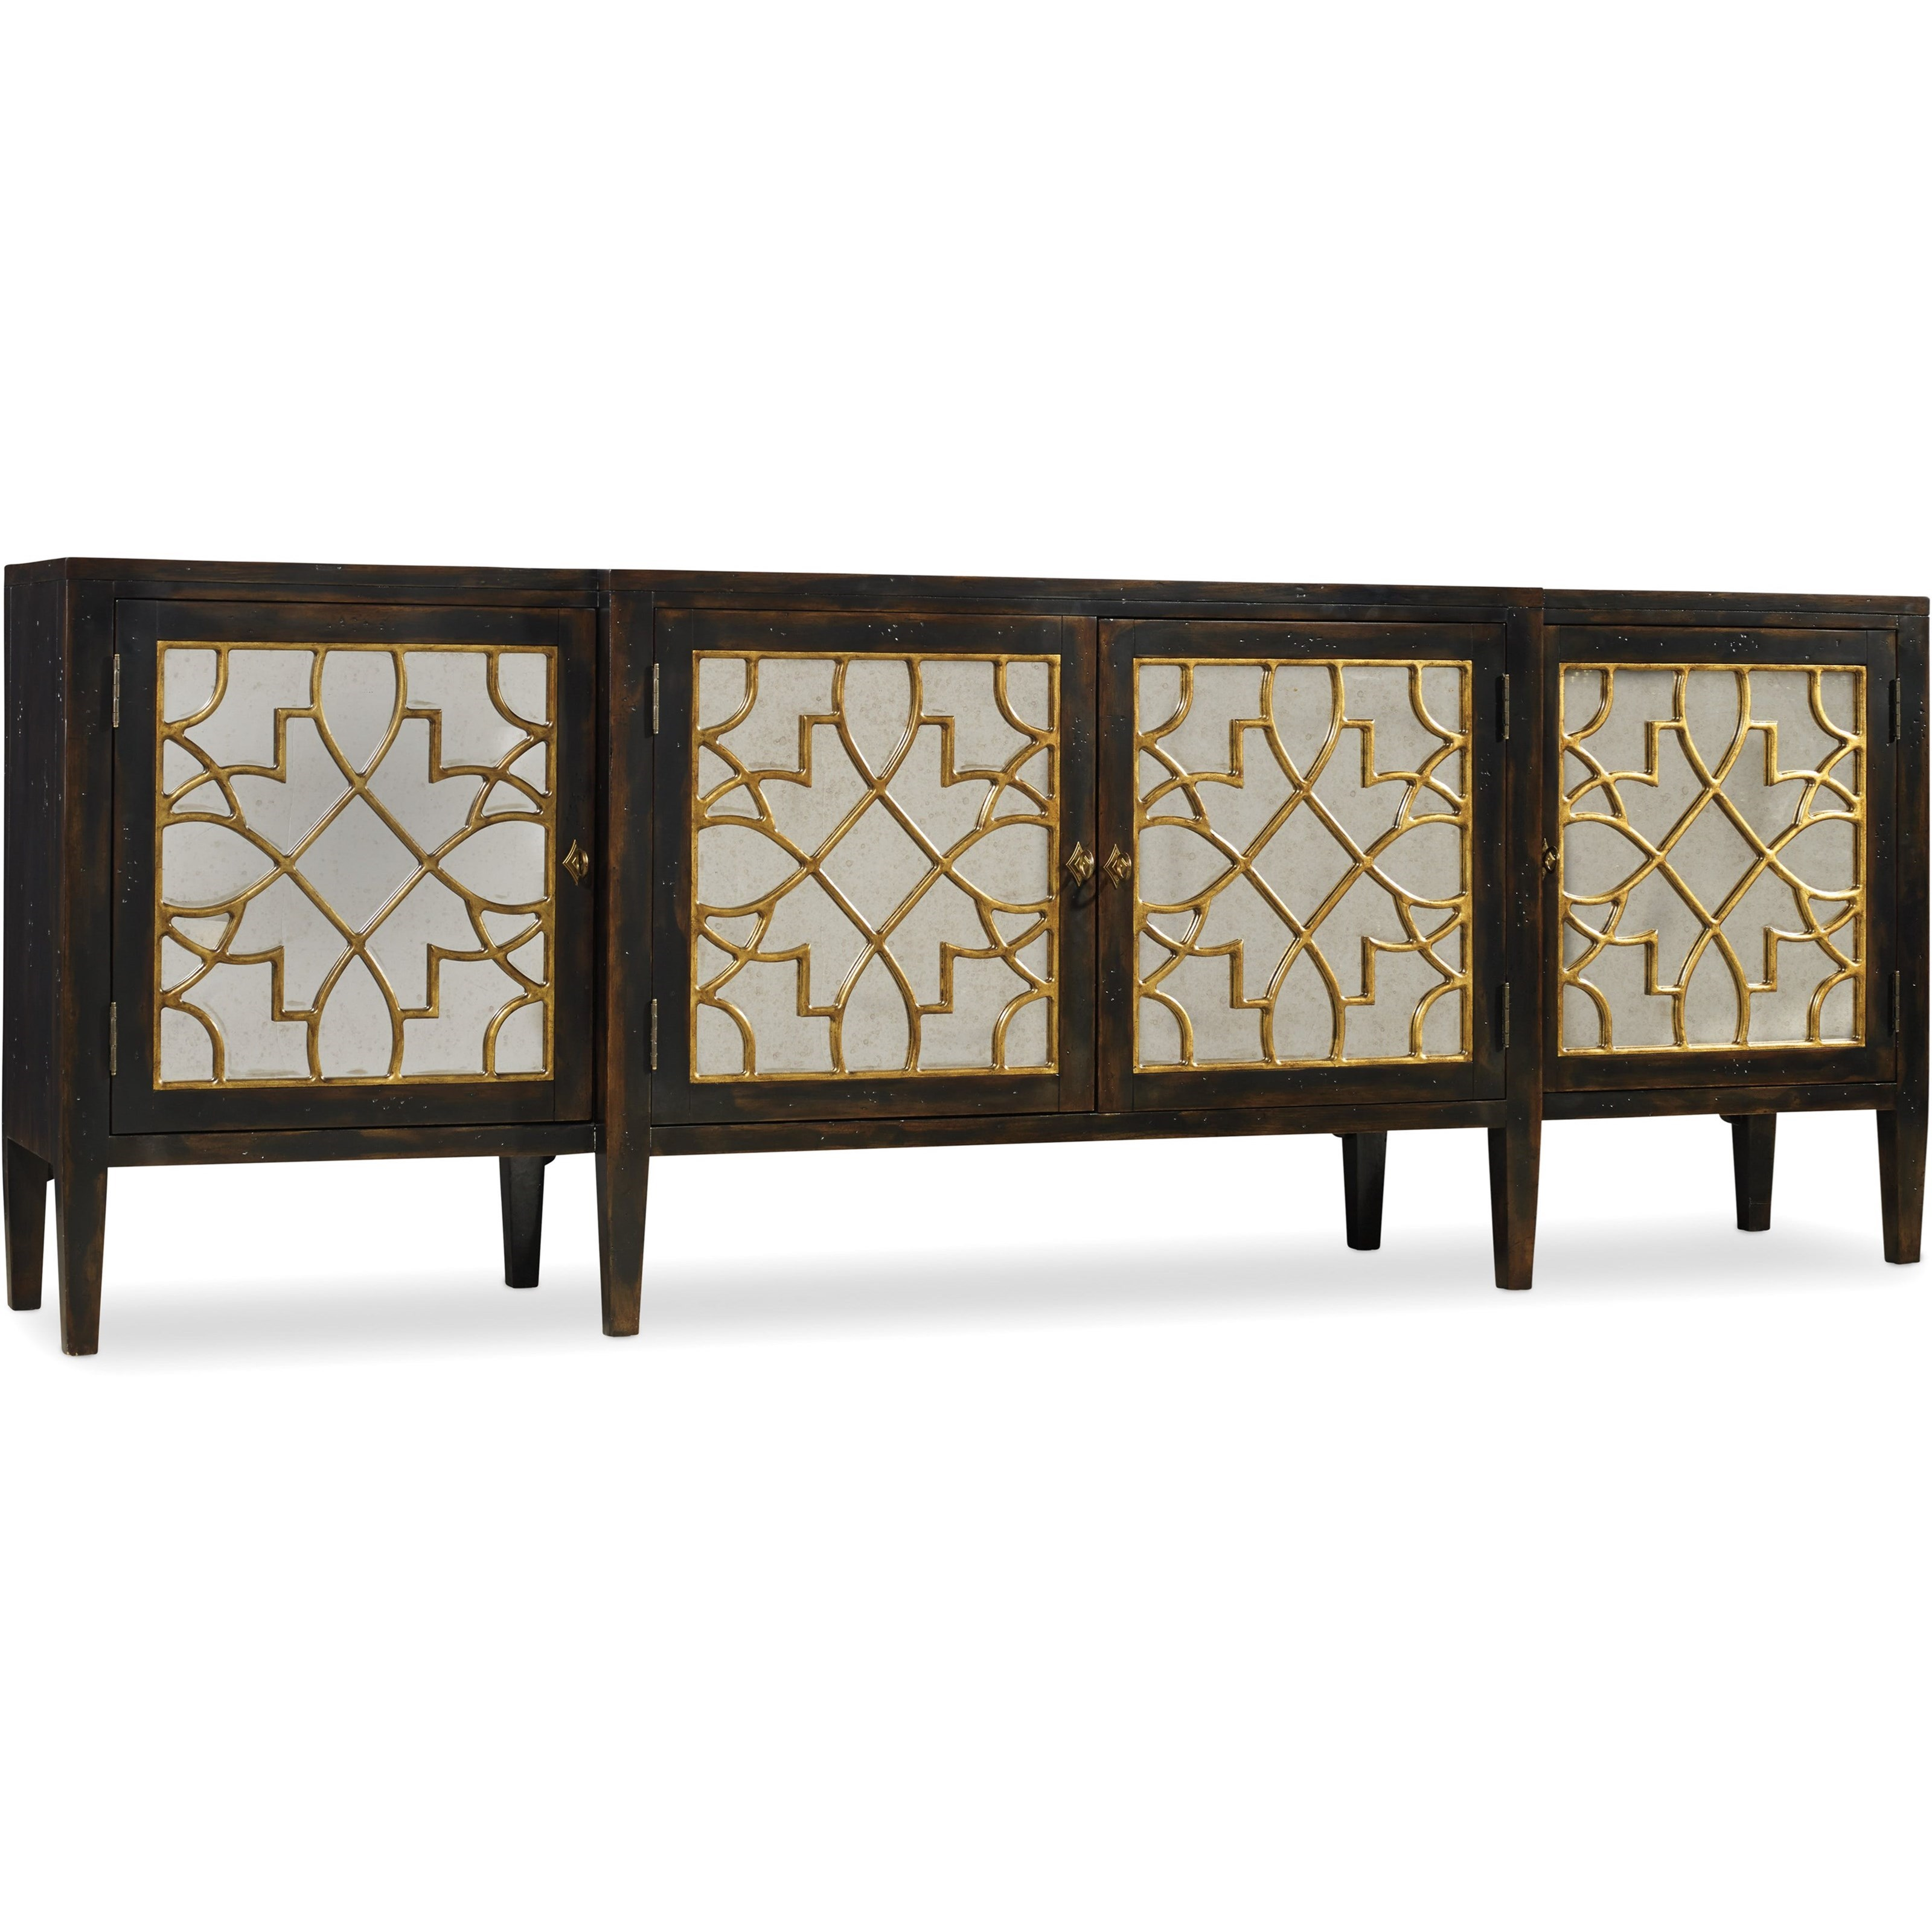 Hooker Furniture Sanctuary Four Door Mirrored Console - Item Number: 3005-85005